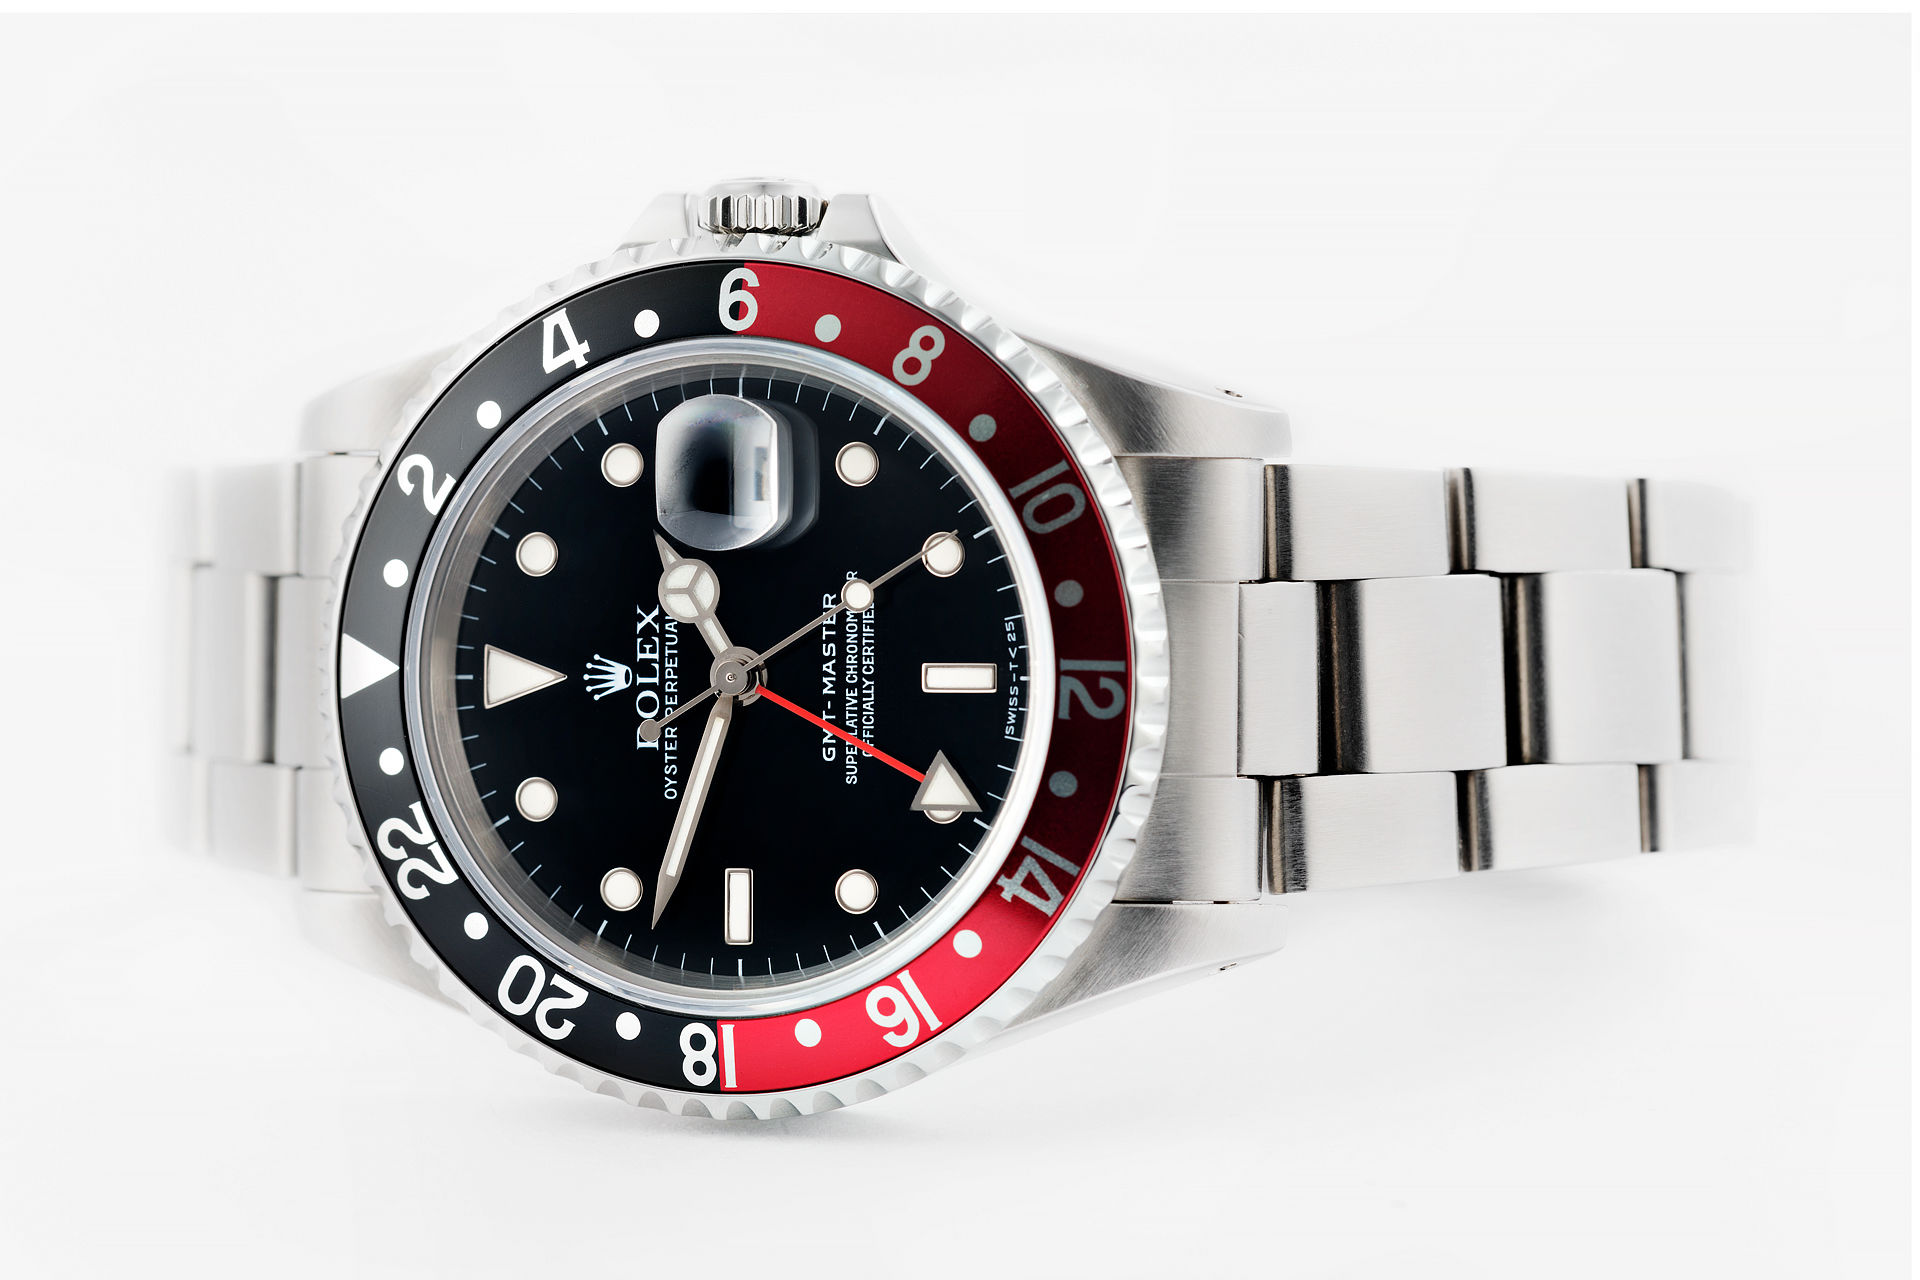 ref 16700 | Final Series Box & Papers | Rolex GMT-Master